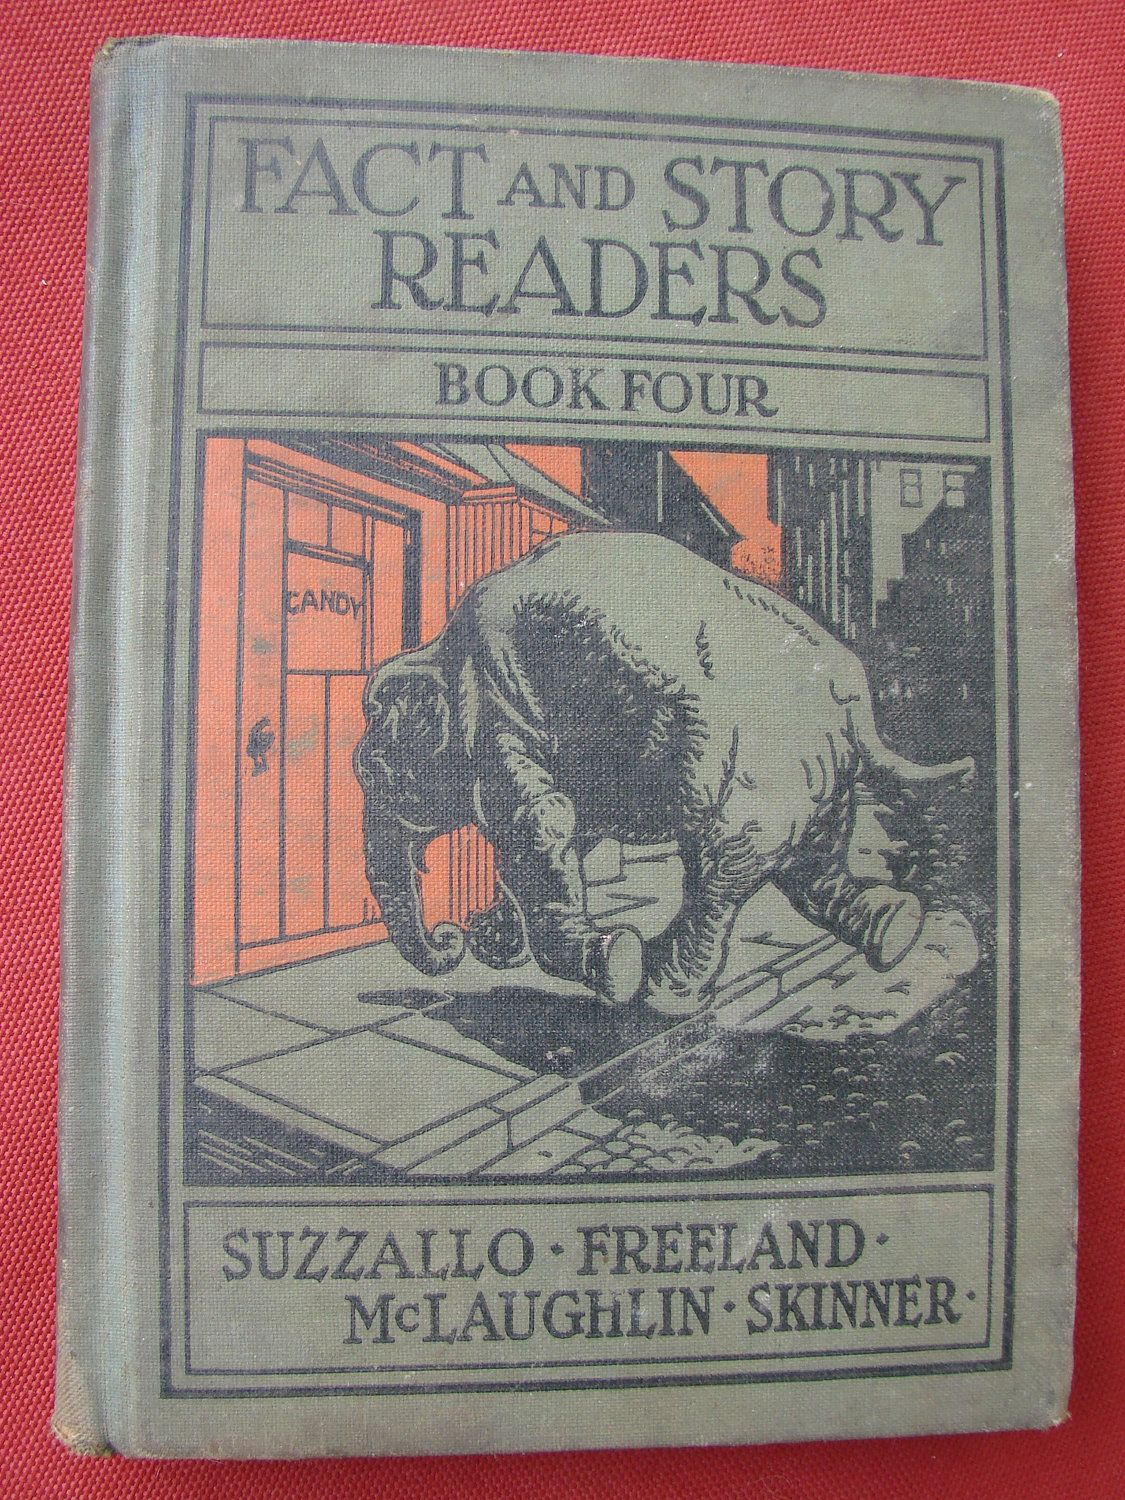 Vintage 1931 Fact and Story Readers Old School Reading Book. by thecherrychic via Etsy.